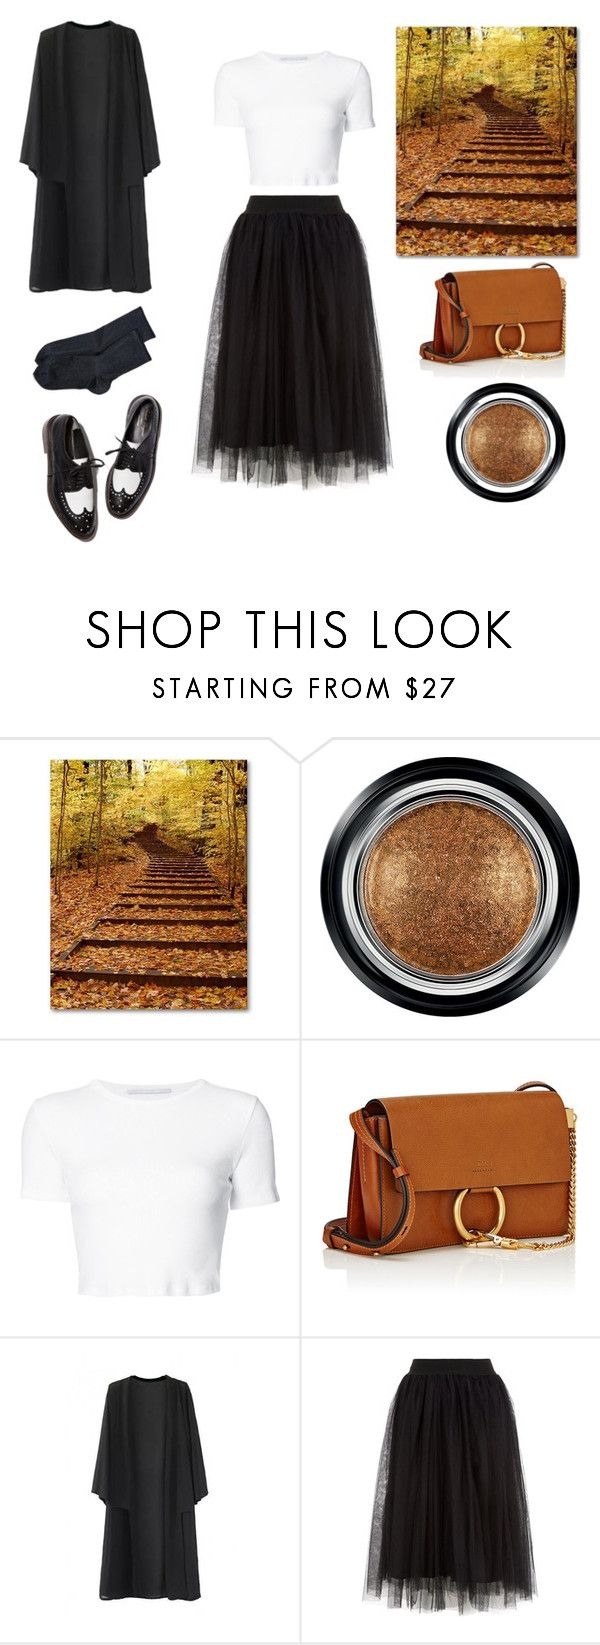 """""""Untitled #124"""" by dieulinh-iii ❤ liked on Polyvore featuring Giorgio Armani, Rosetta Getty, Chloé and Wolford"""